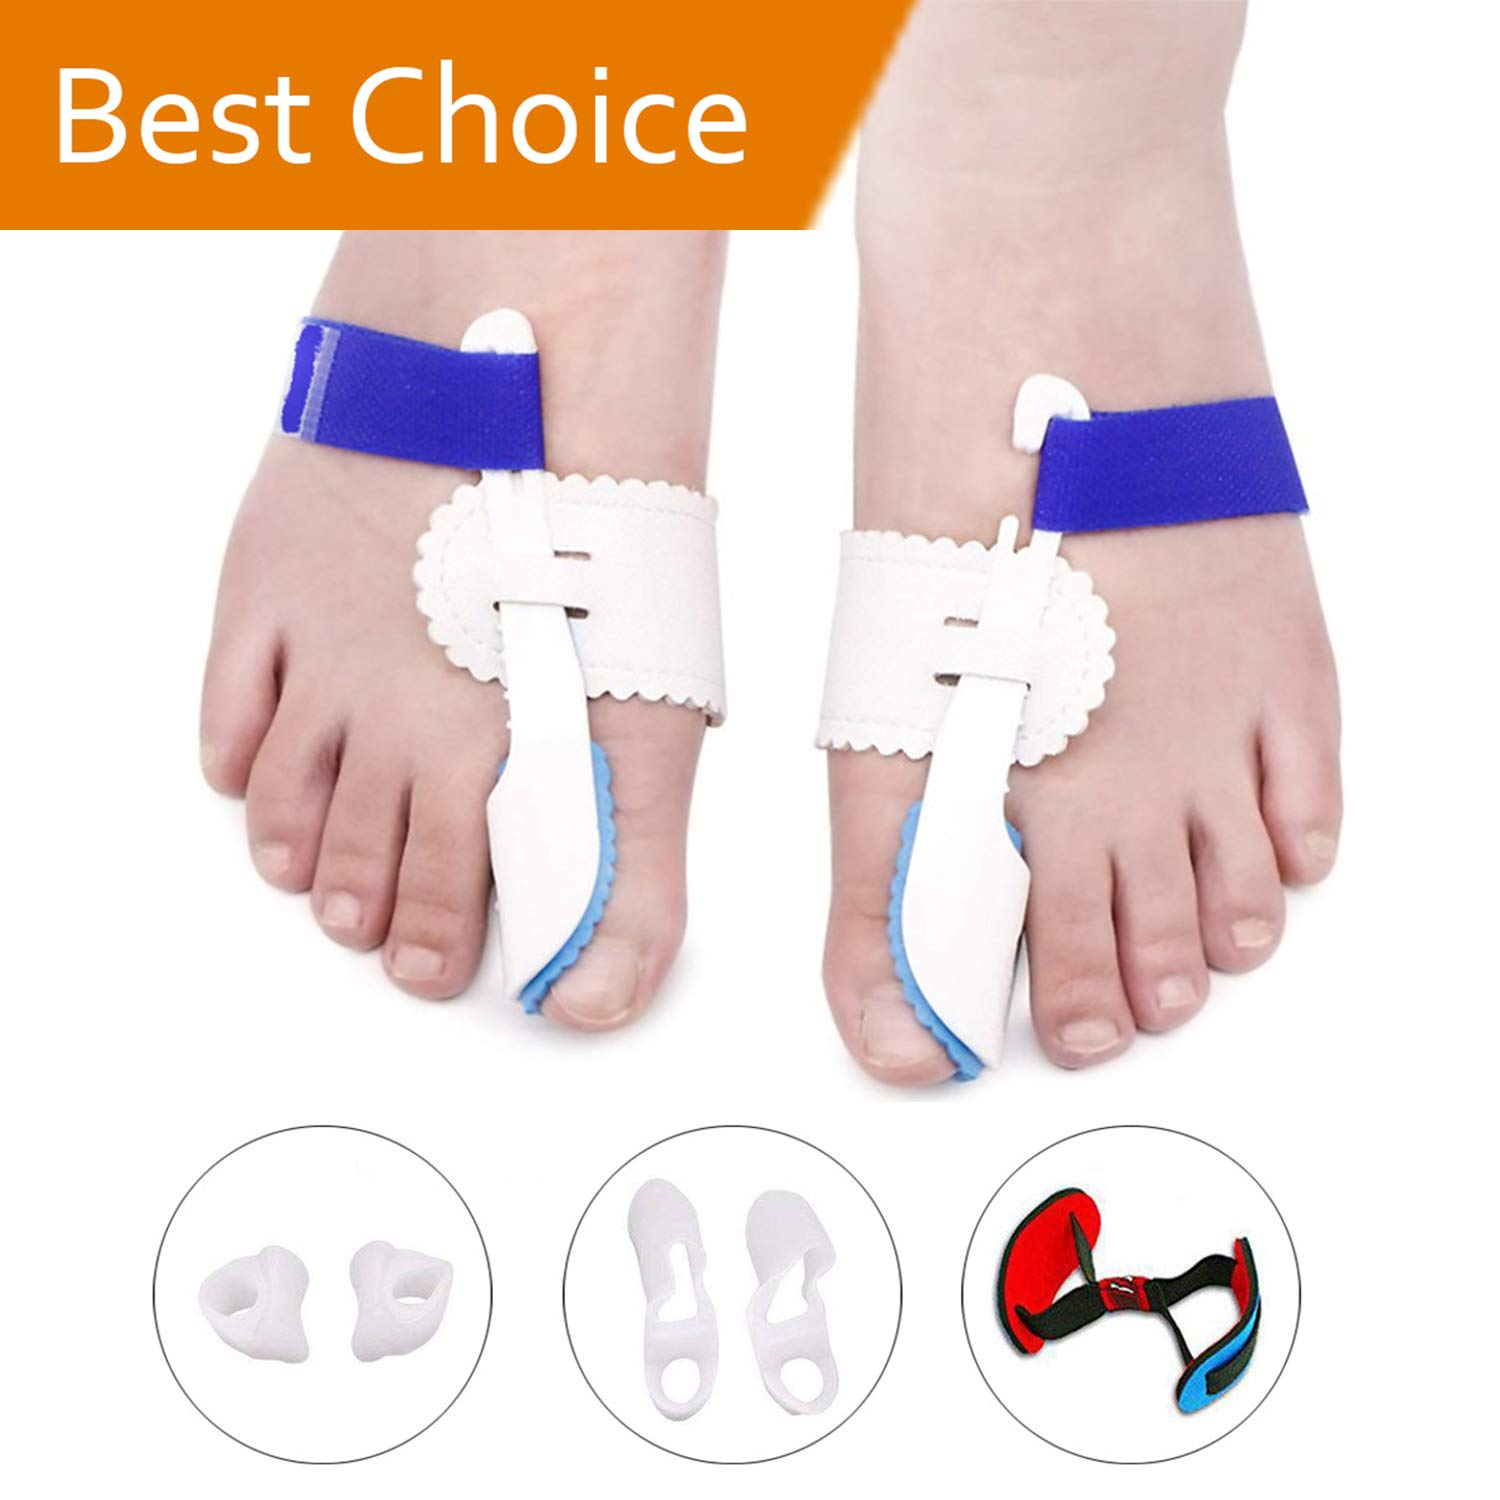 Bunion Corrector, Bunion Splints with Bunion Tape for Hallux Valgus, Big Toe Joint,